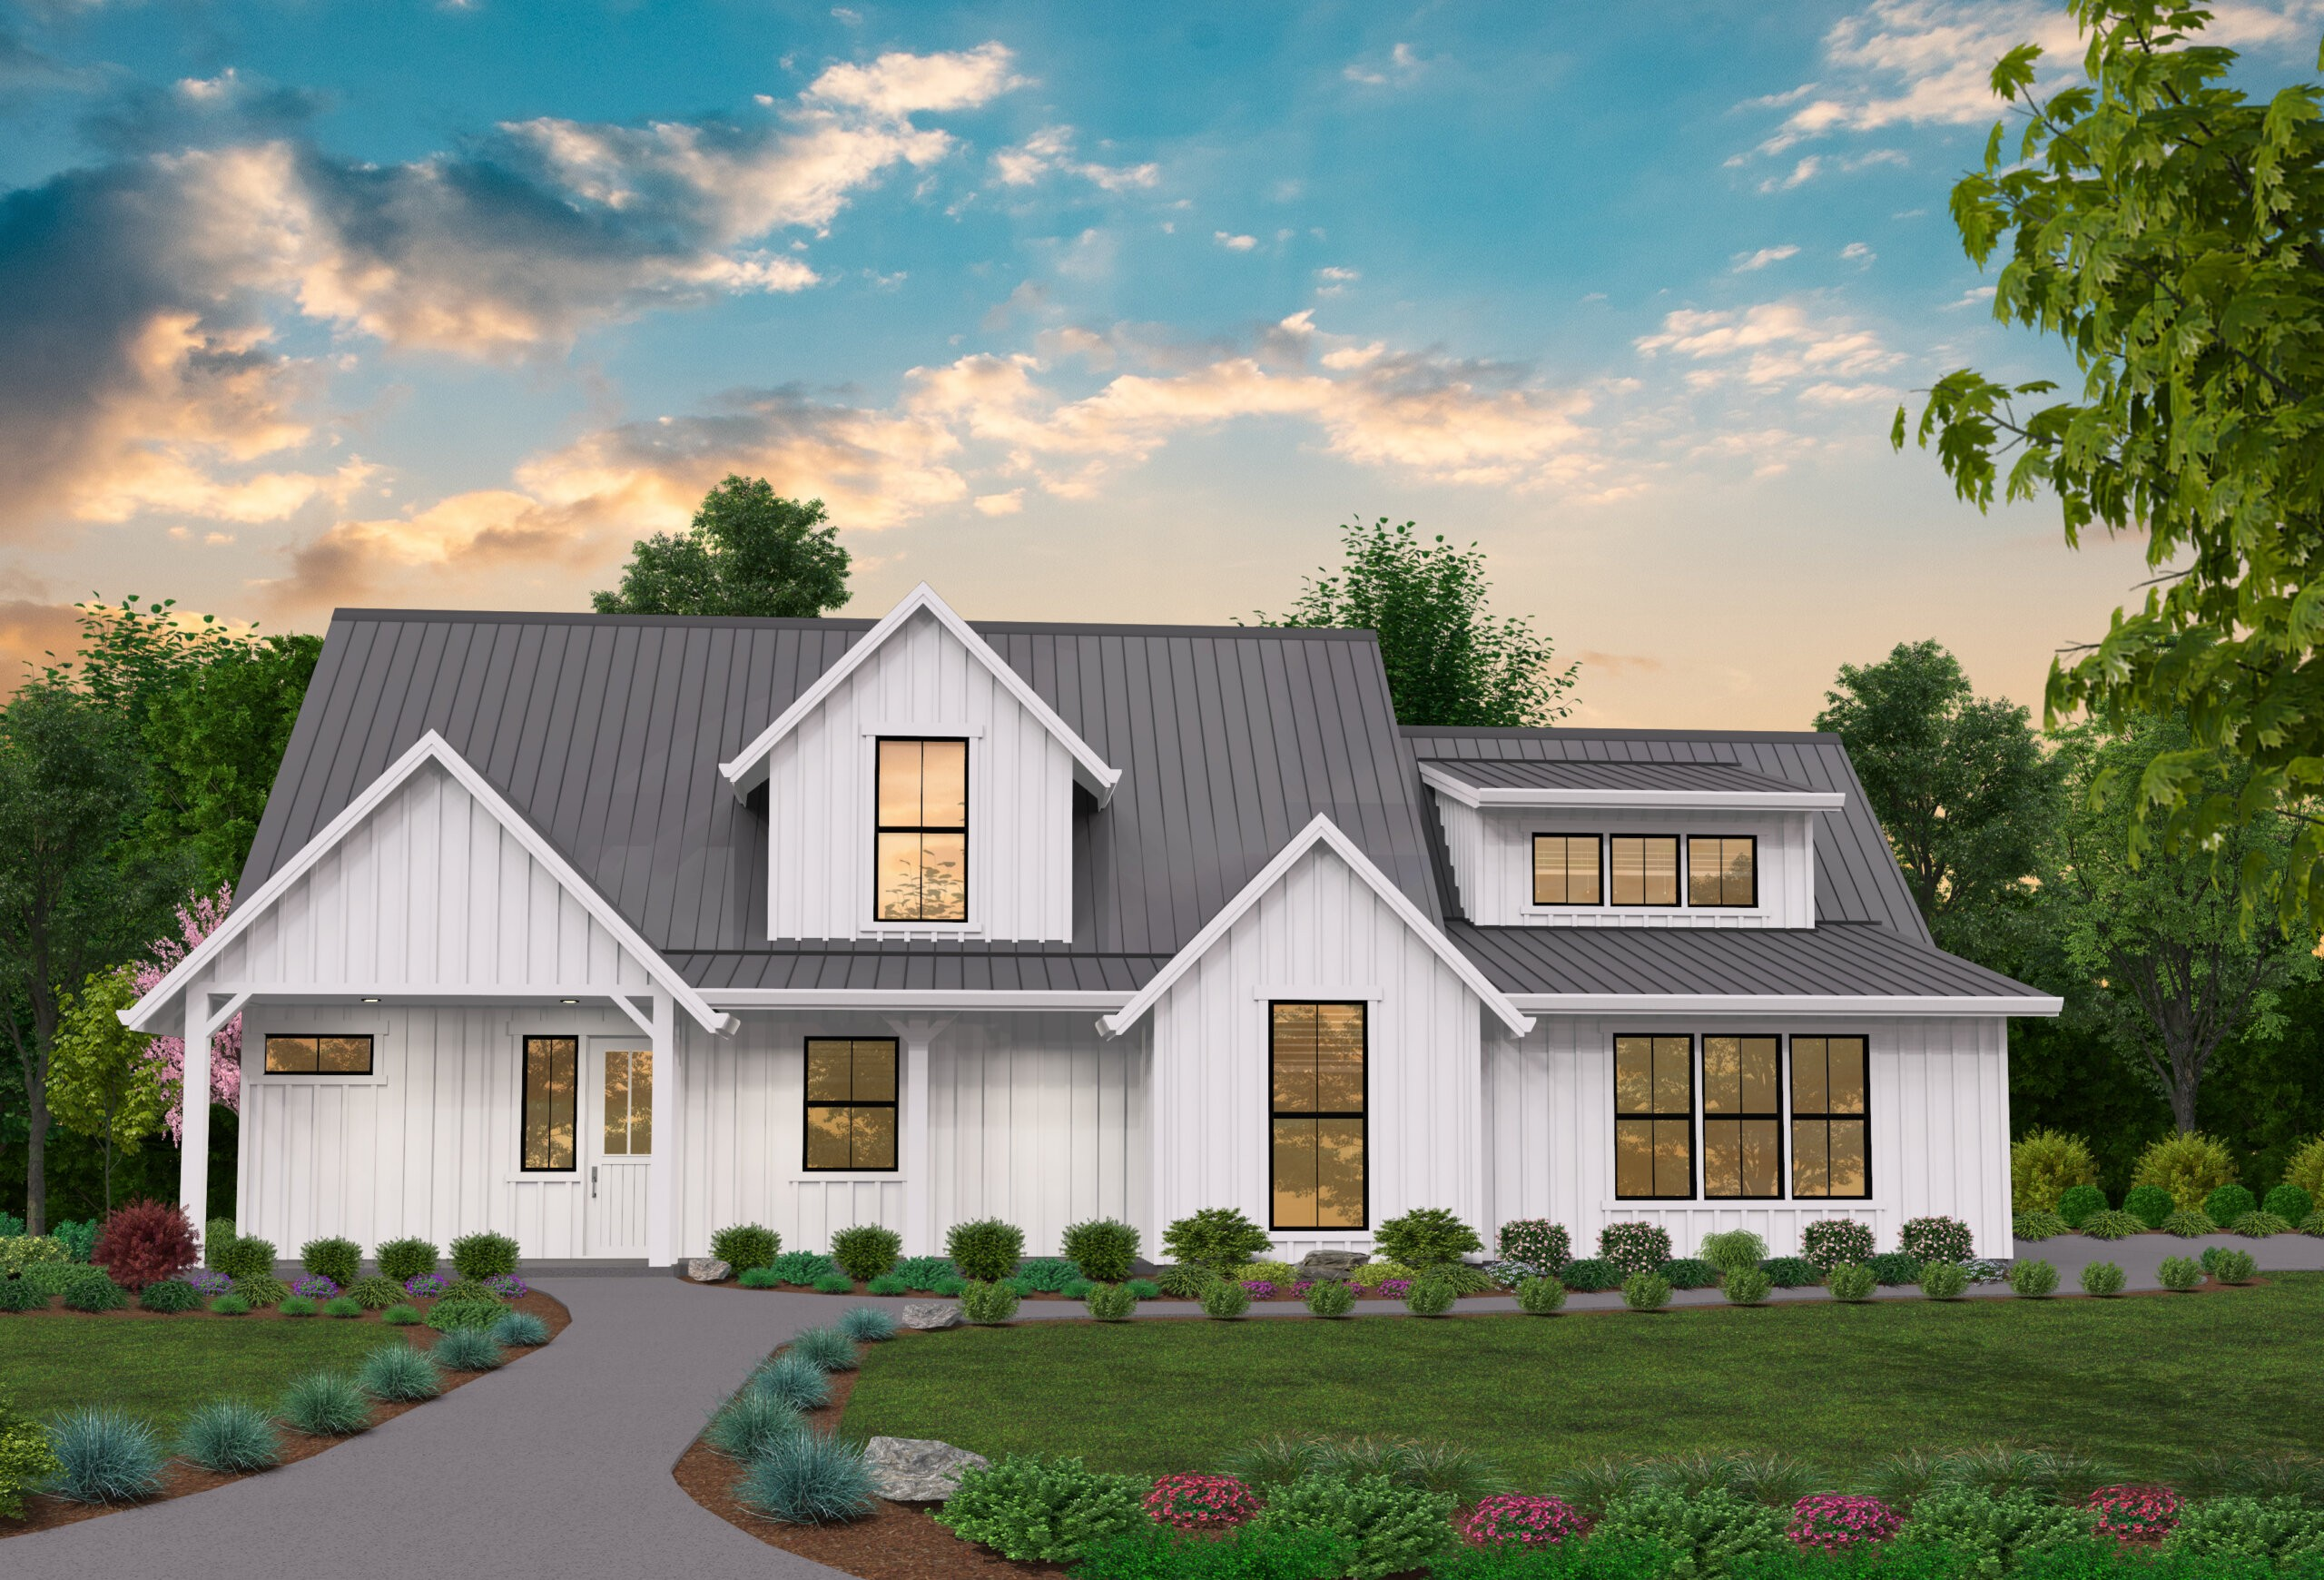 Cottage House Plans | Cottage Home Designs & Floor Plans with Photos